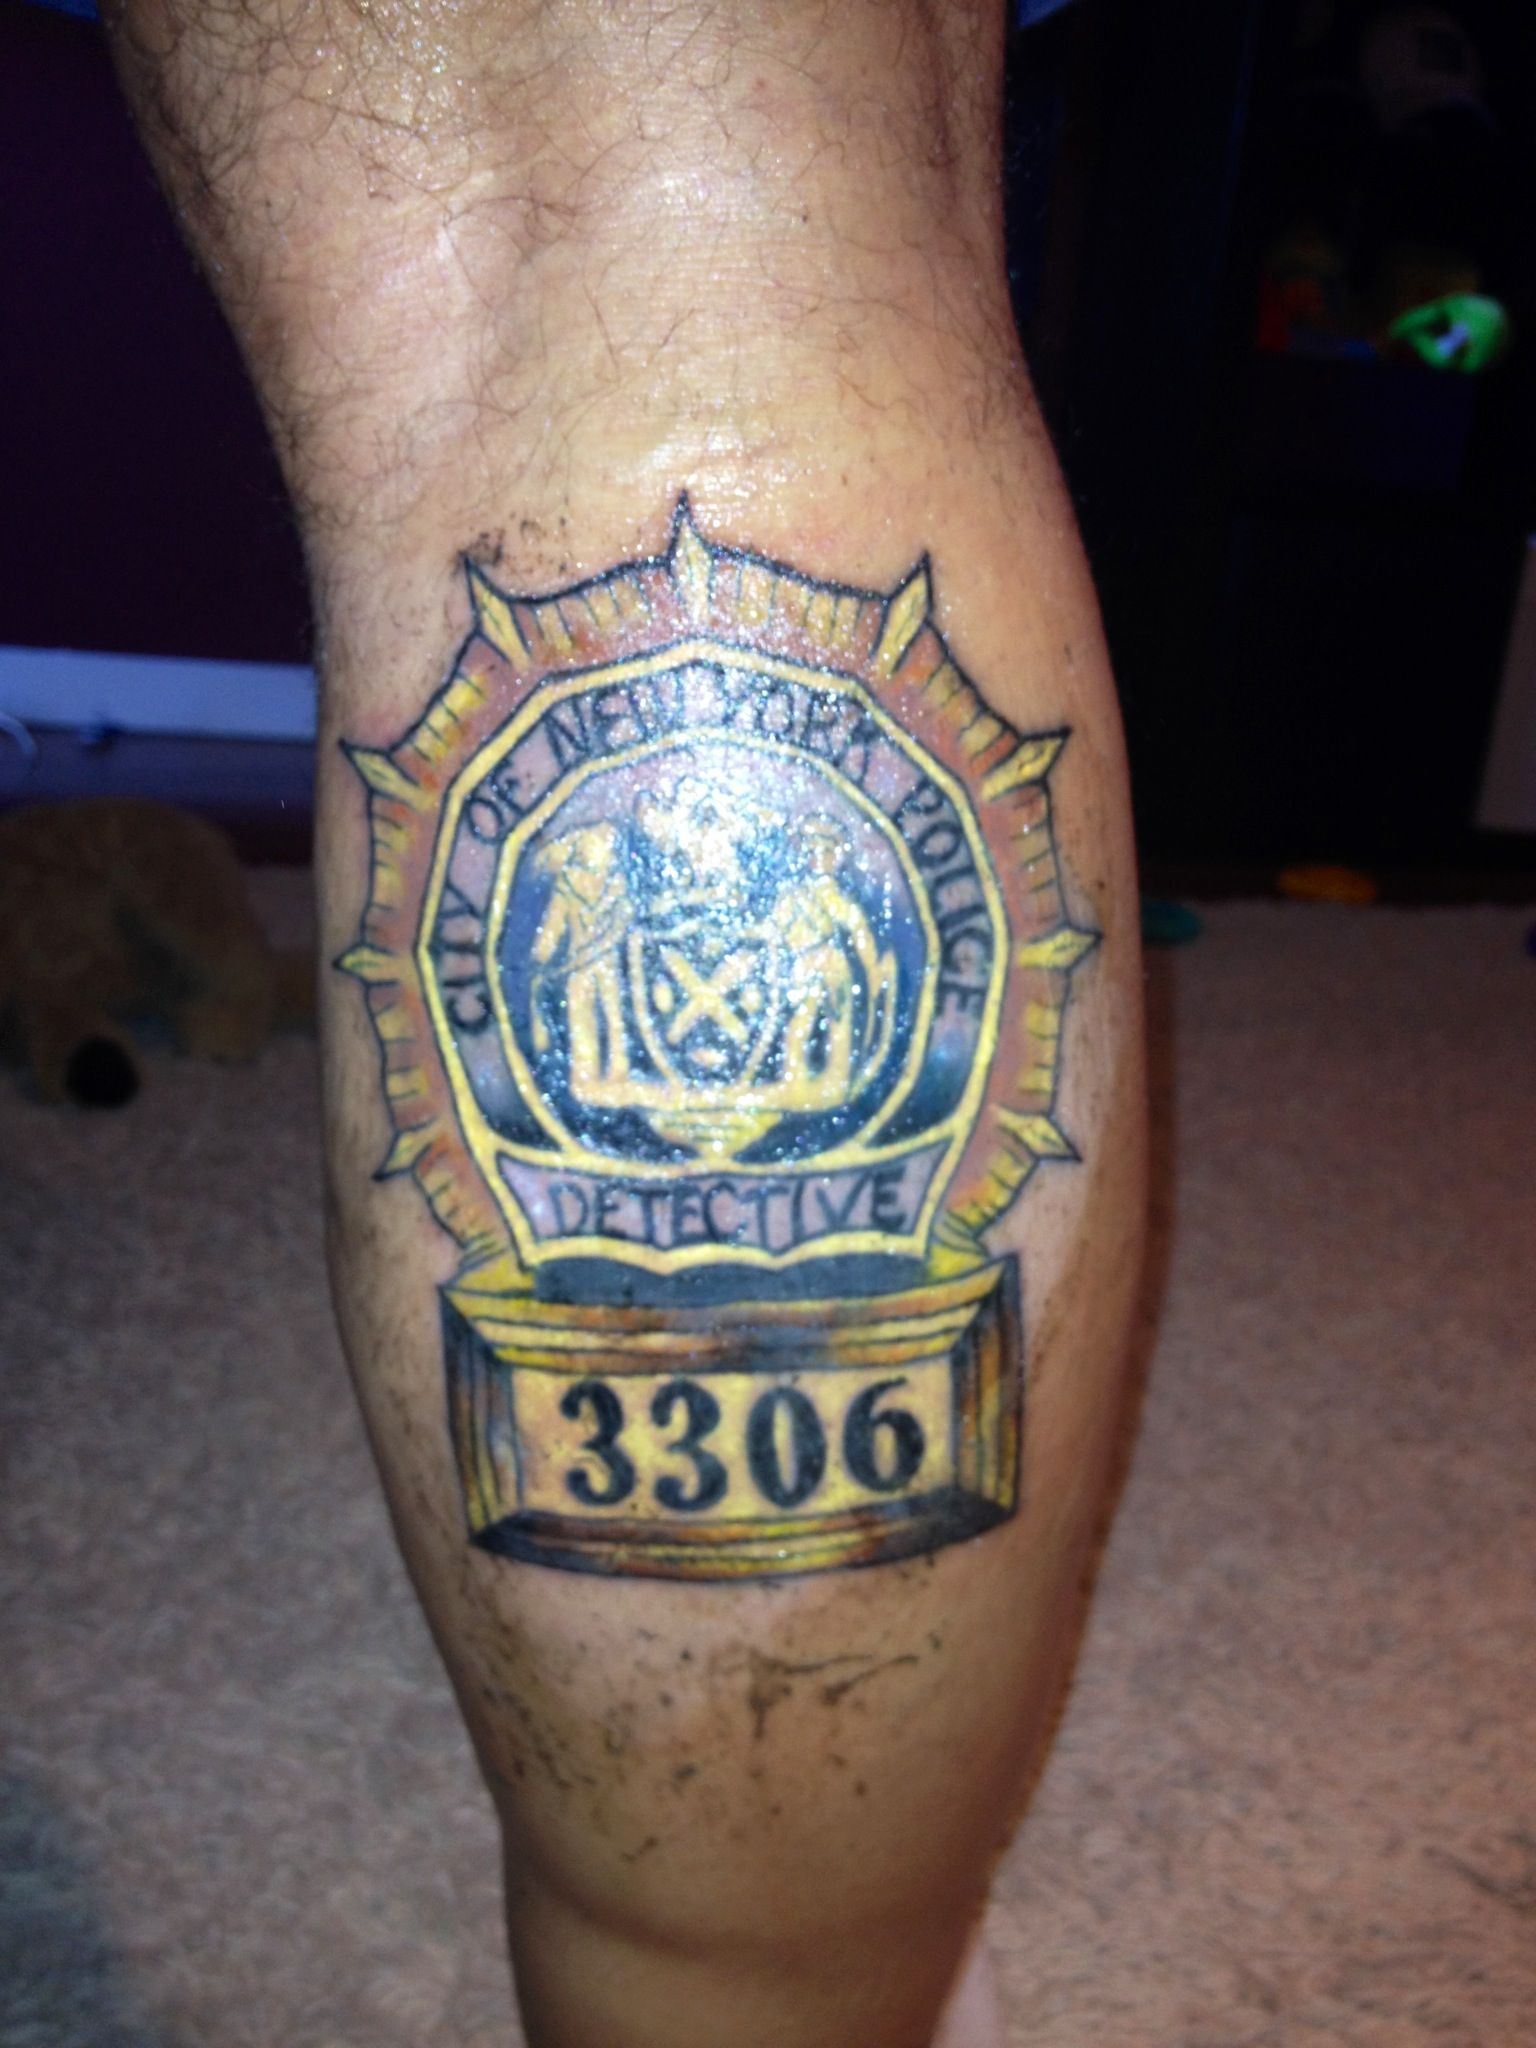 bf3d13d81 NYPD tattoo #4015 | NYPD | Police, Law enforcement, Police officer